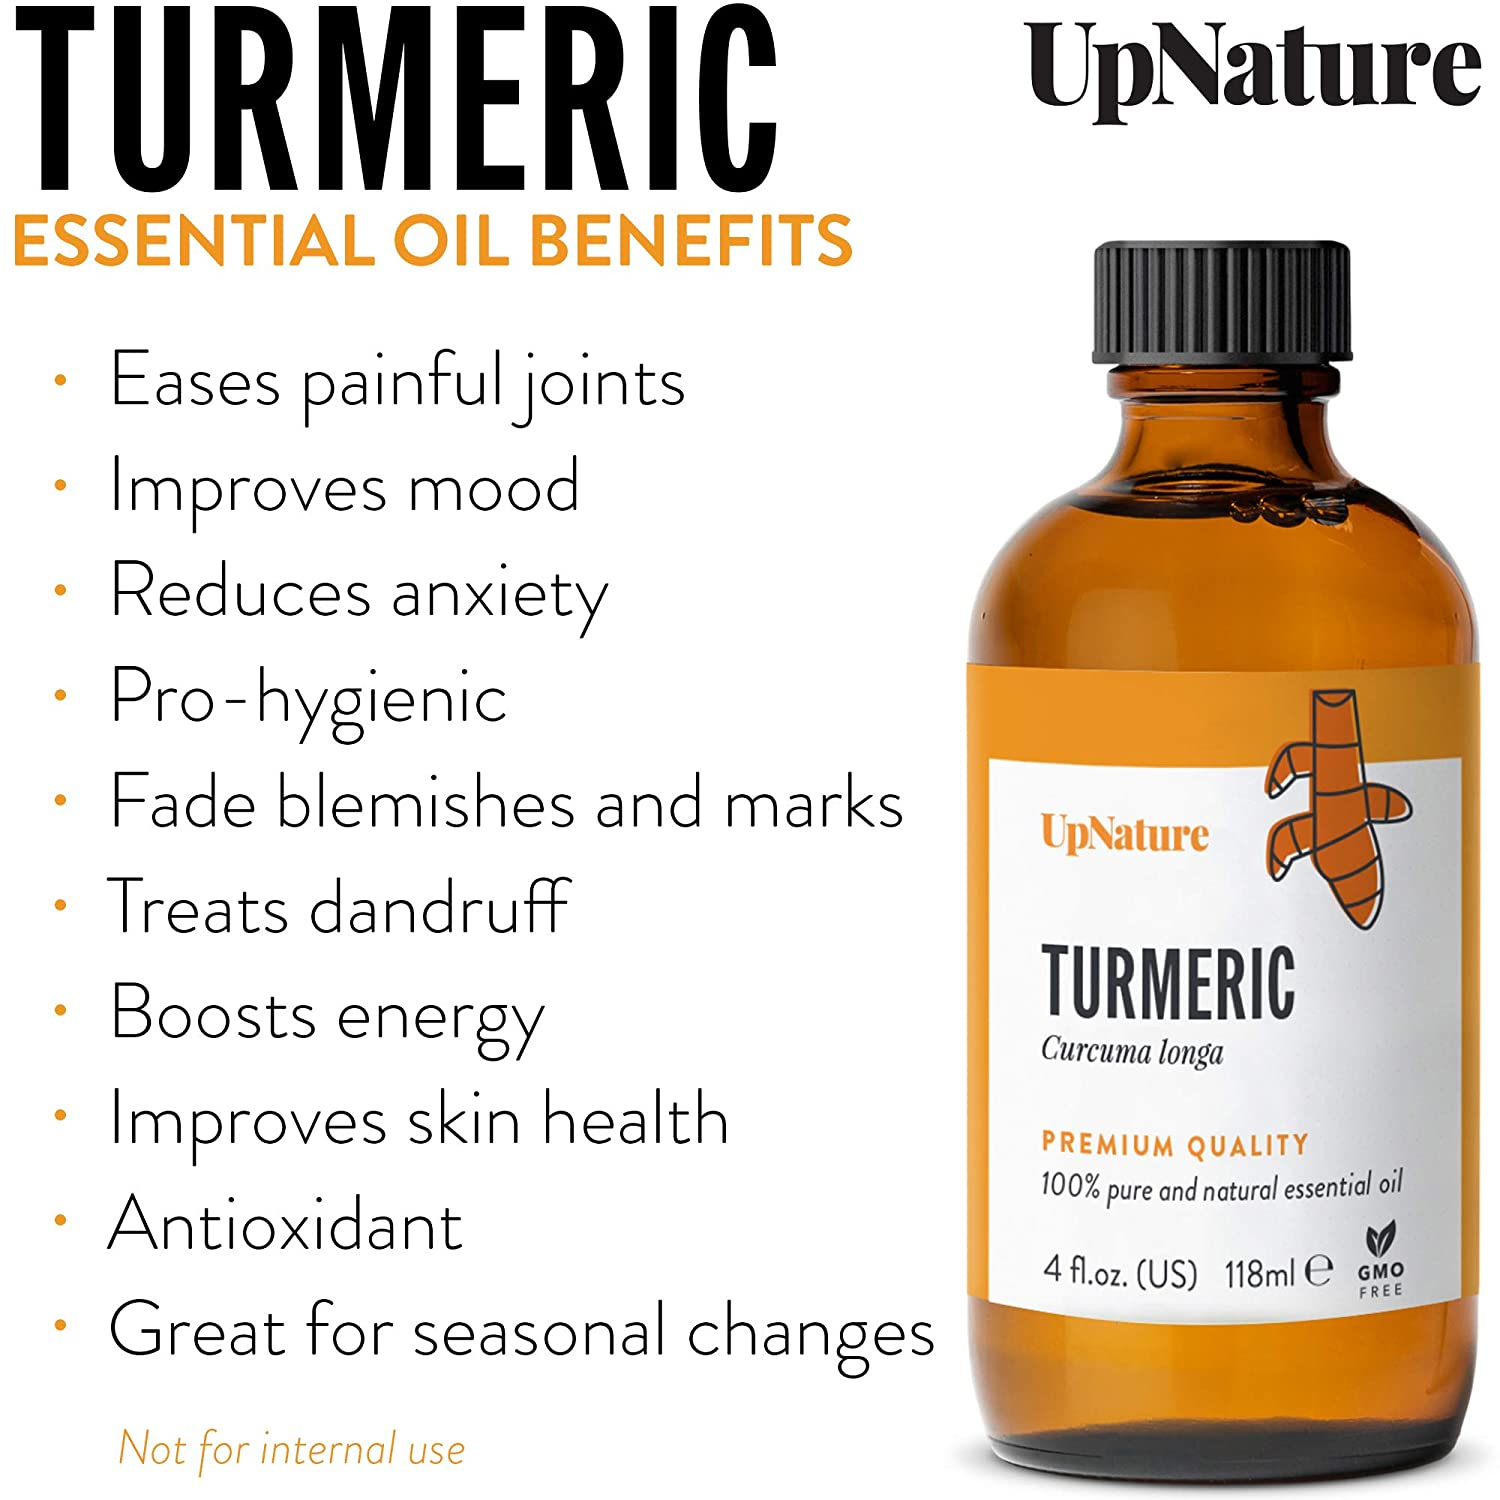 Turmeric Essential Oil 4 OZ - Turmeric Oil for Skin & Face - Great for Hair Growth, Eczema, Acne, Aging - Boosts Natural Defenses - Non-GMO, Pure, Undiluted & Strong!